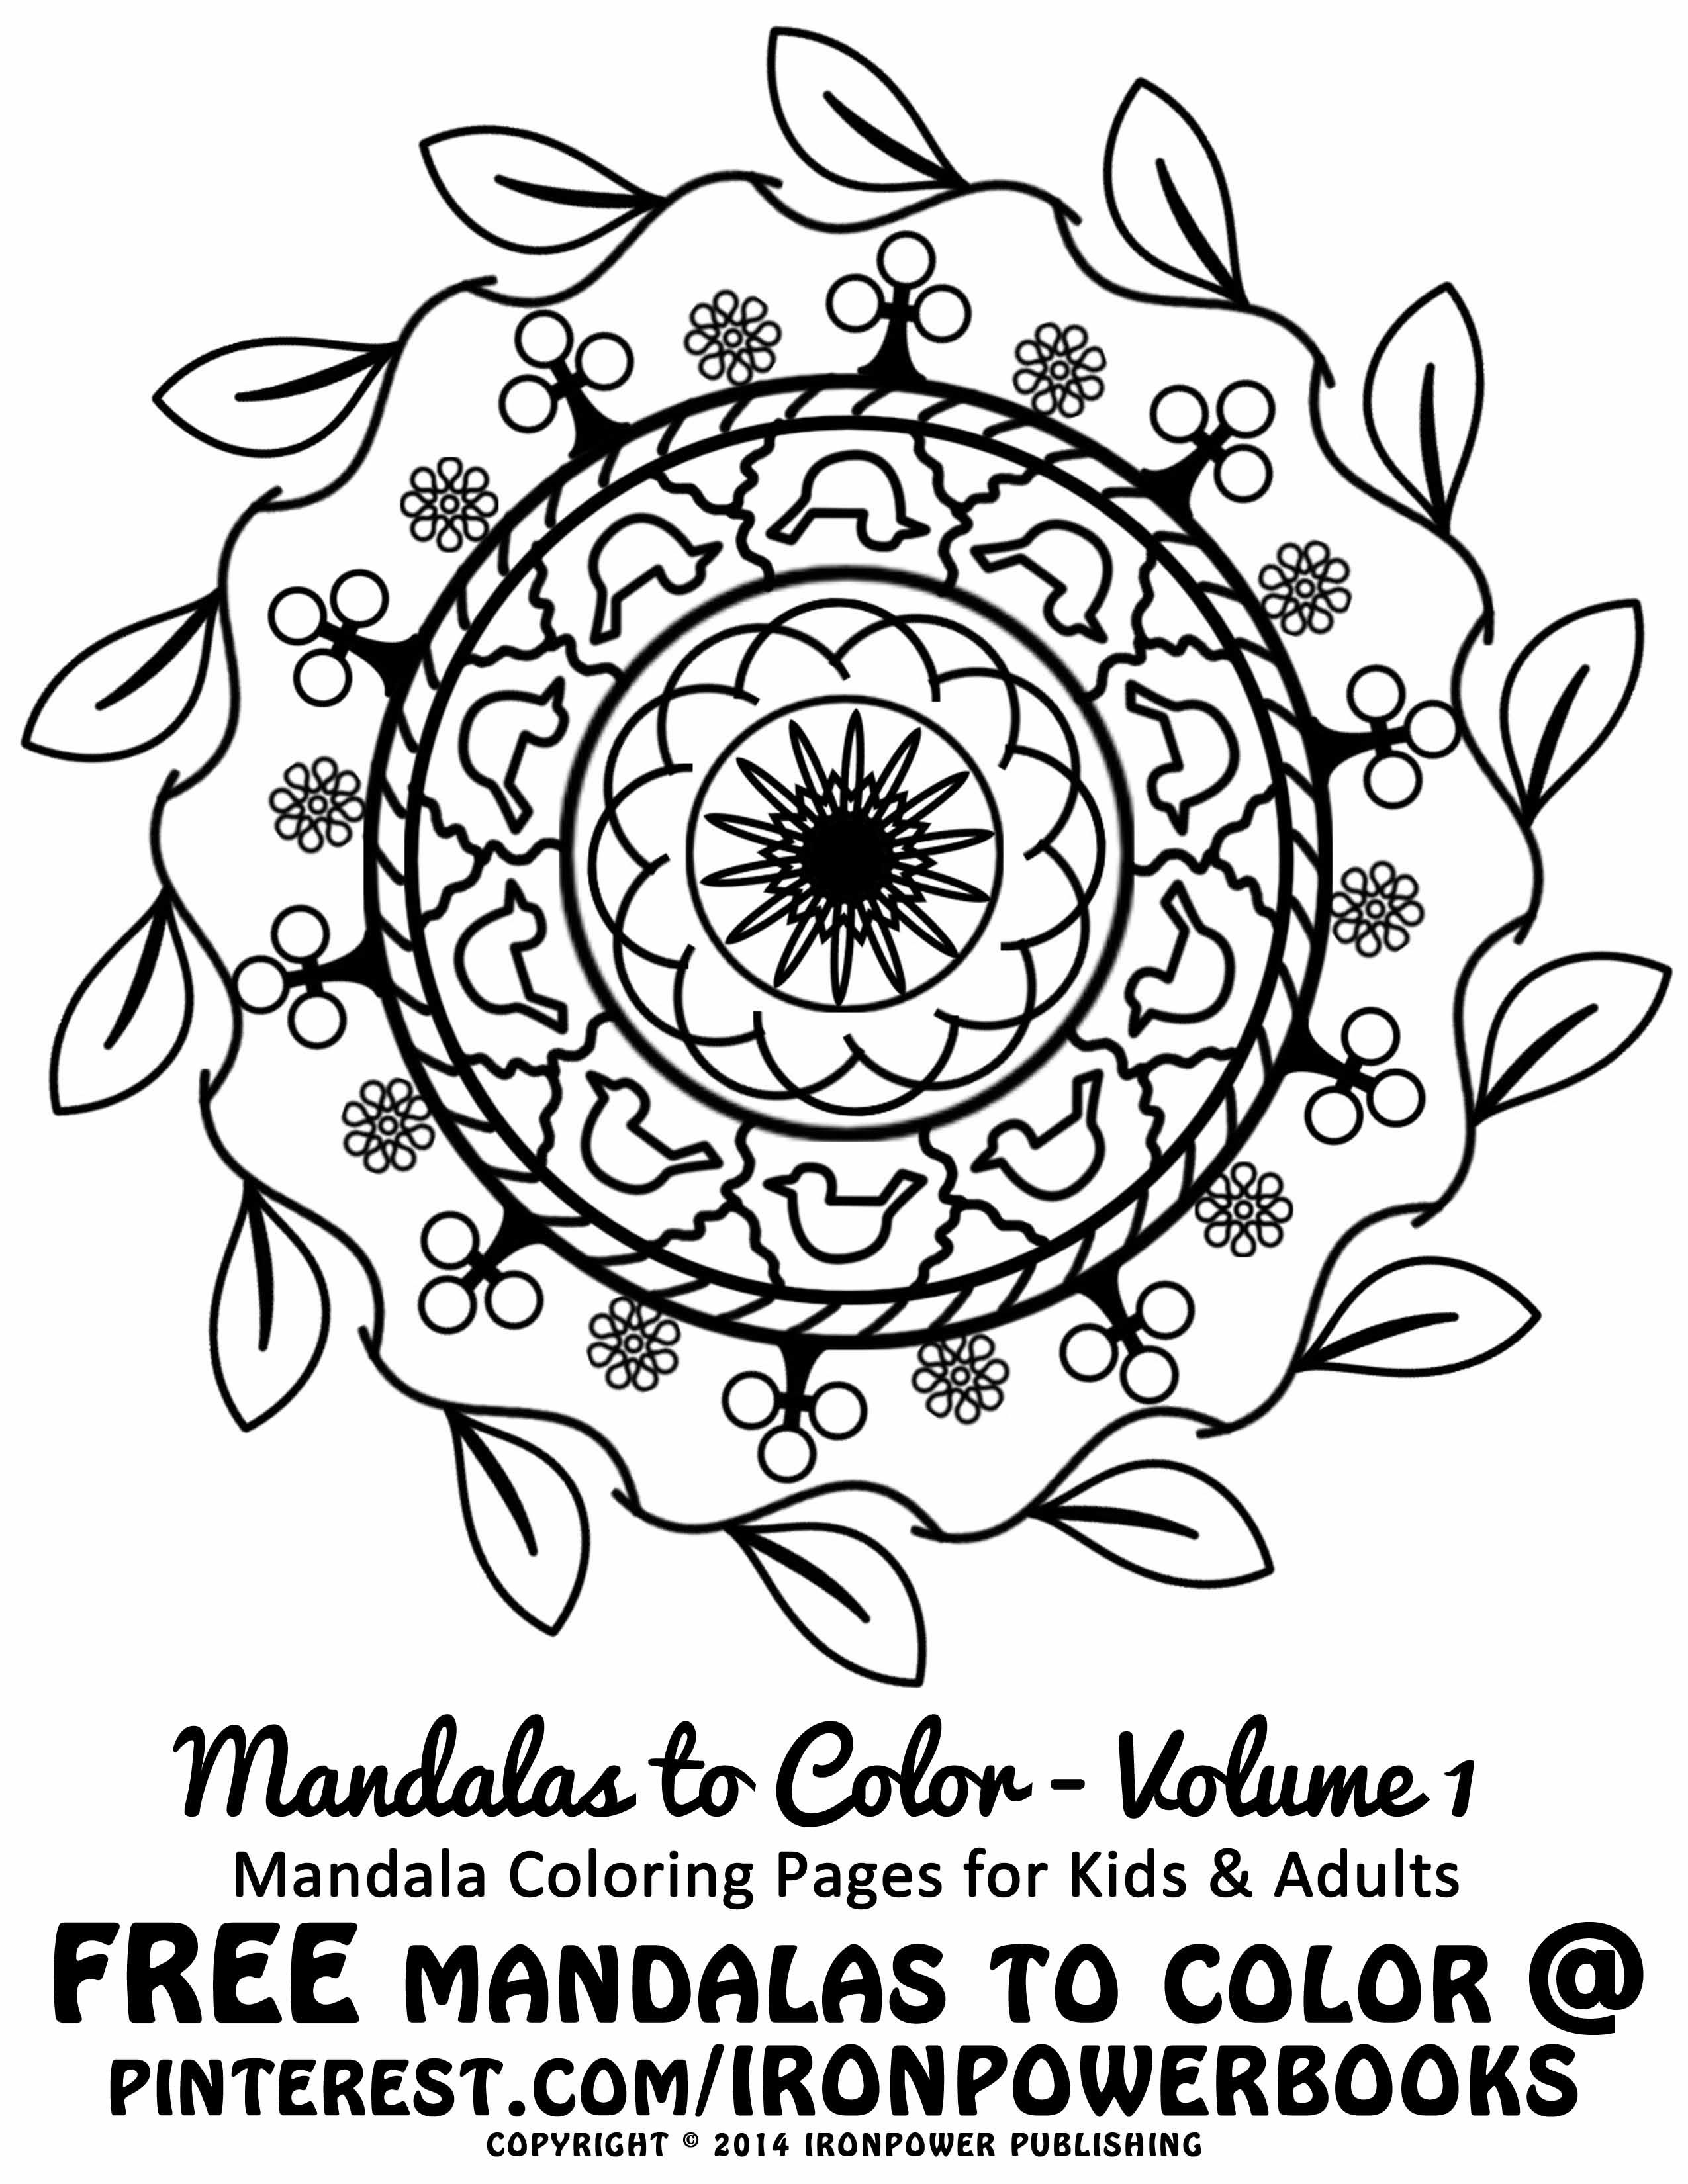 Pin by Shawna Russell on Coloring Pages Pinterest Easy mandala